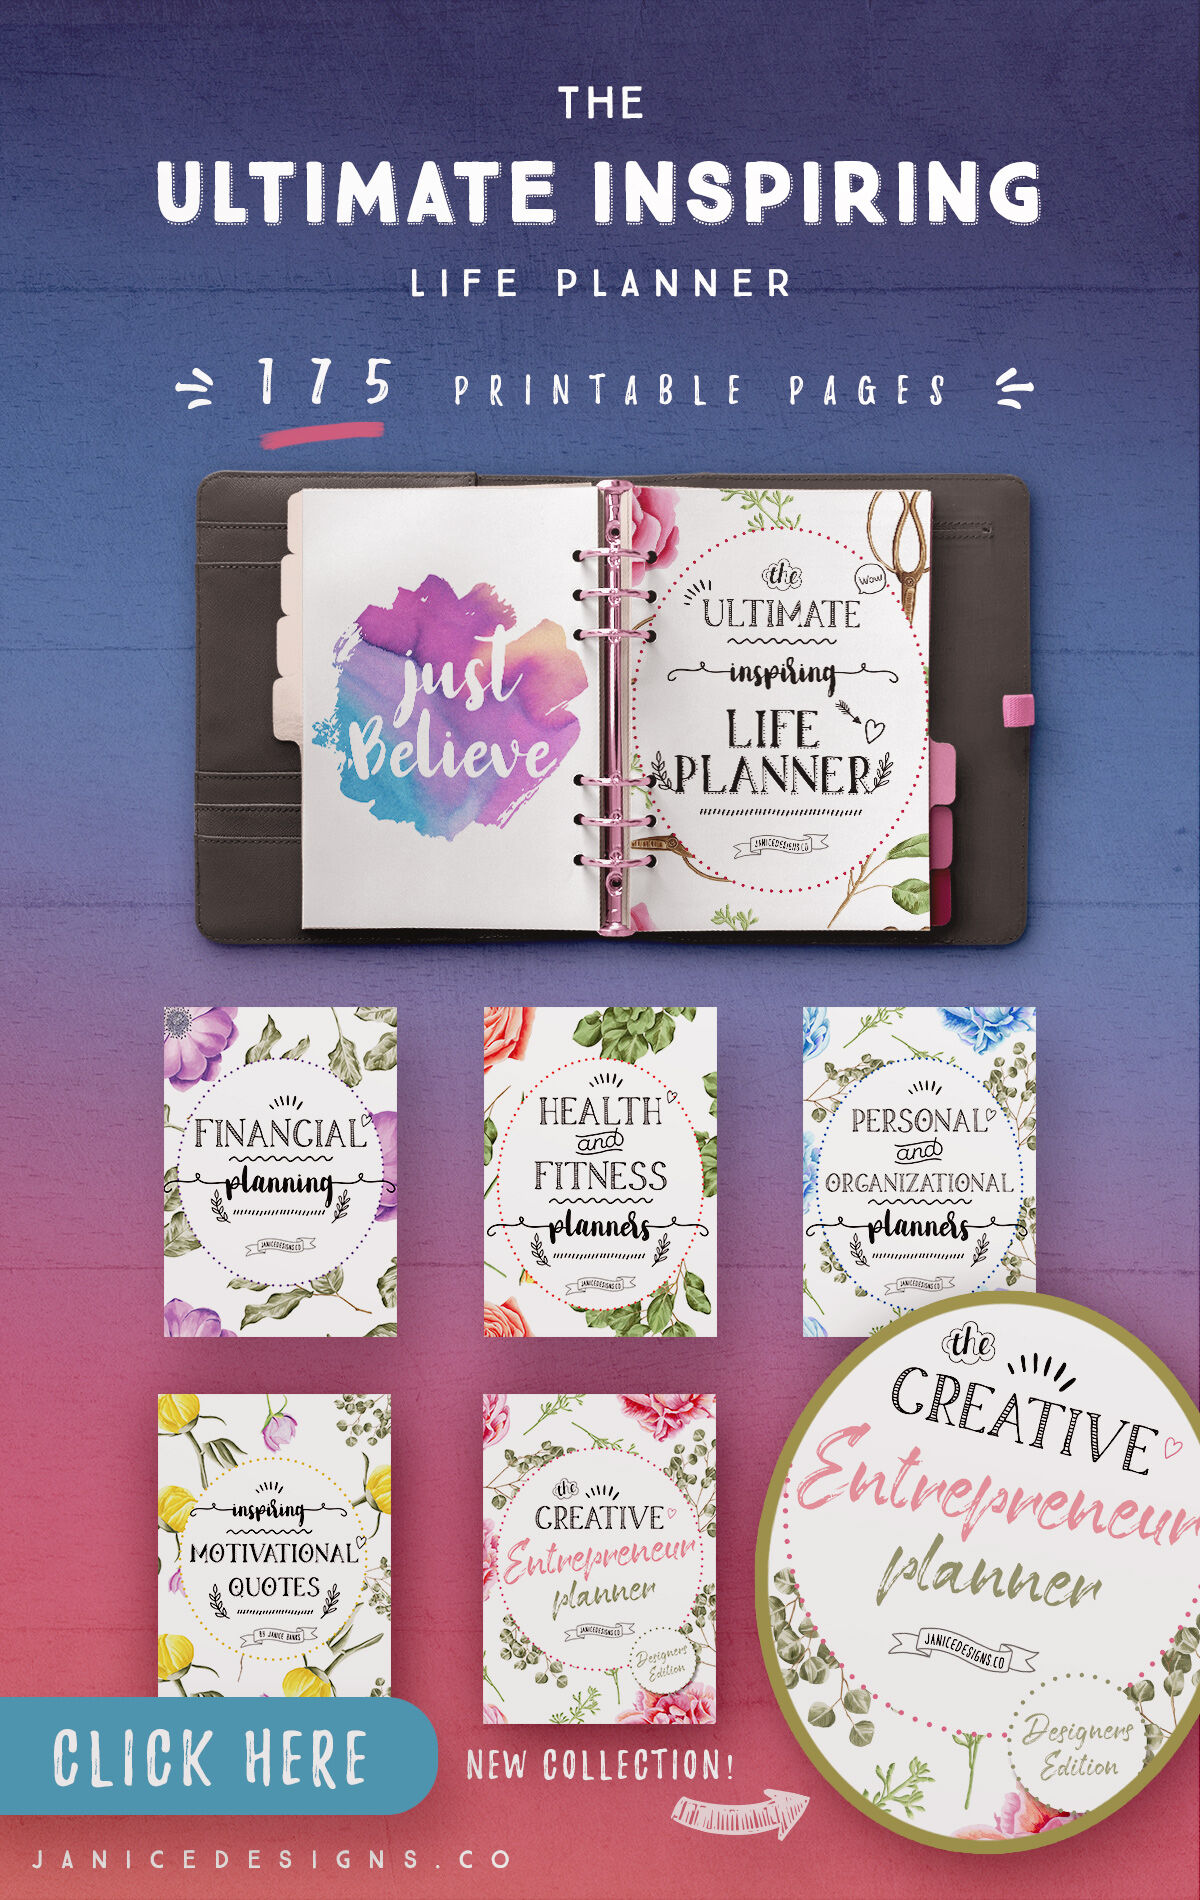 Ultimate Inspiring Life Planner 175 Pages By Janice Designs